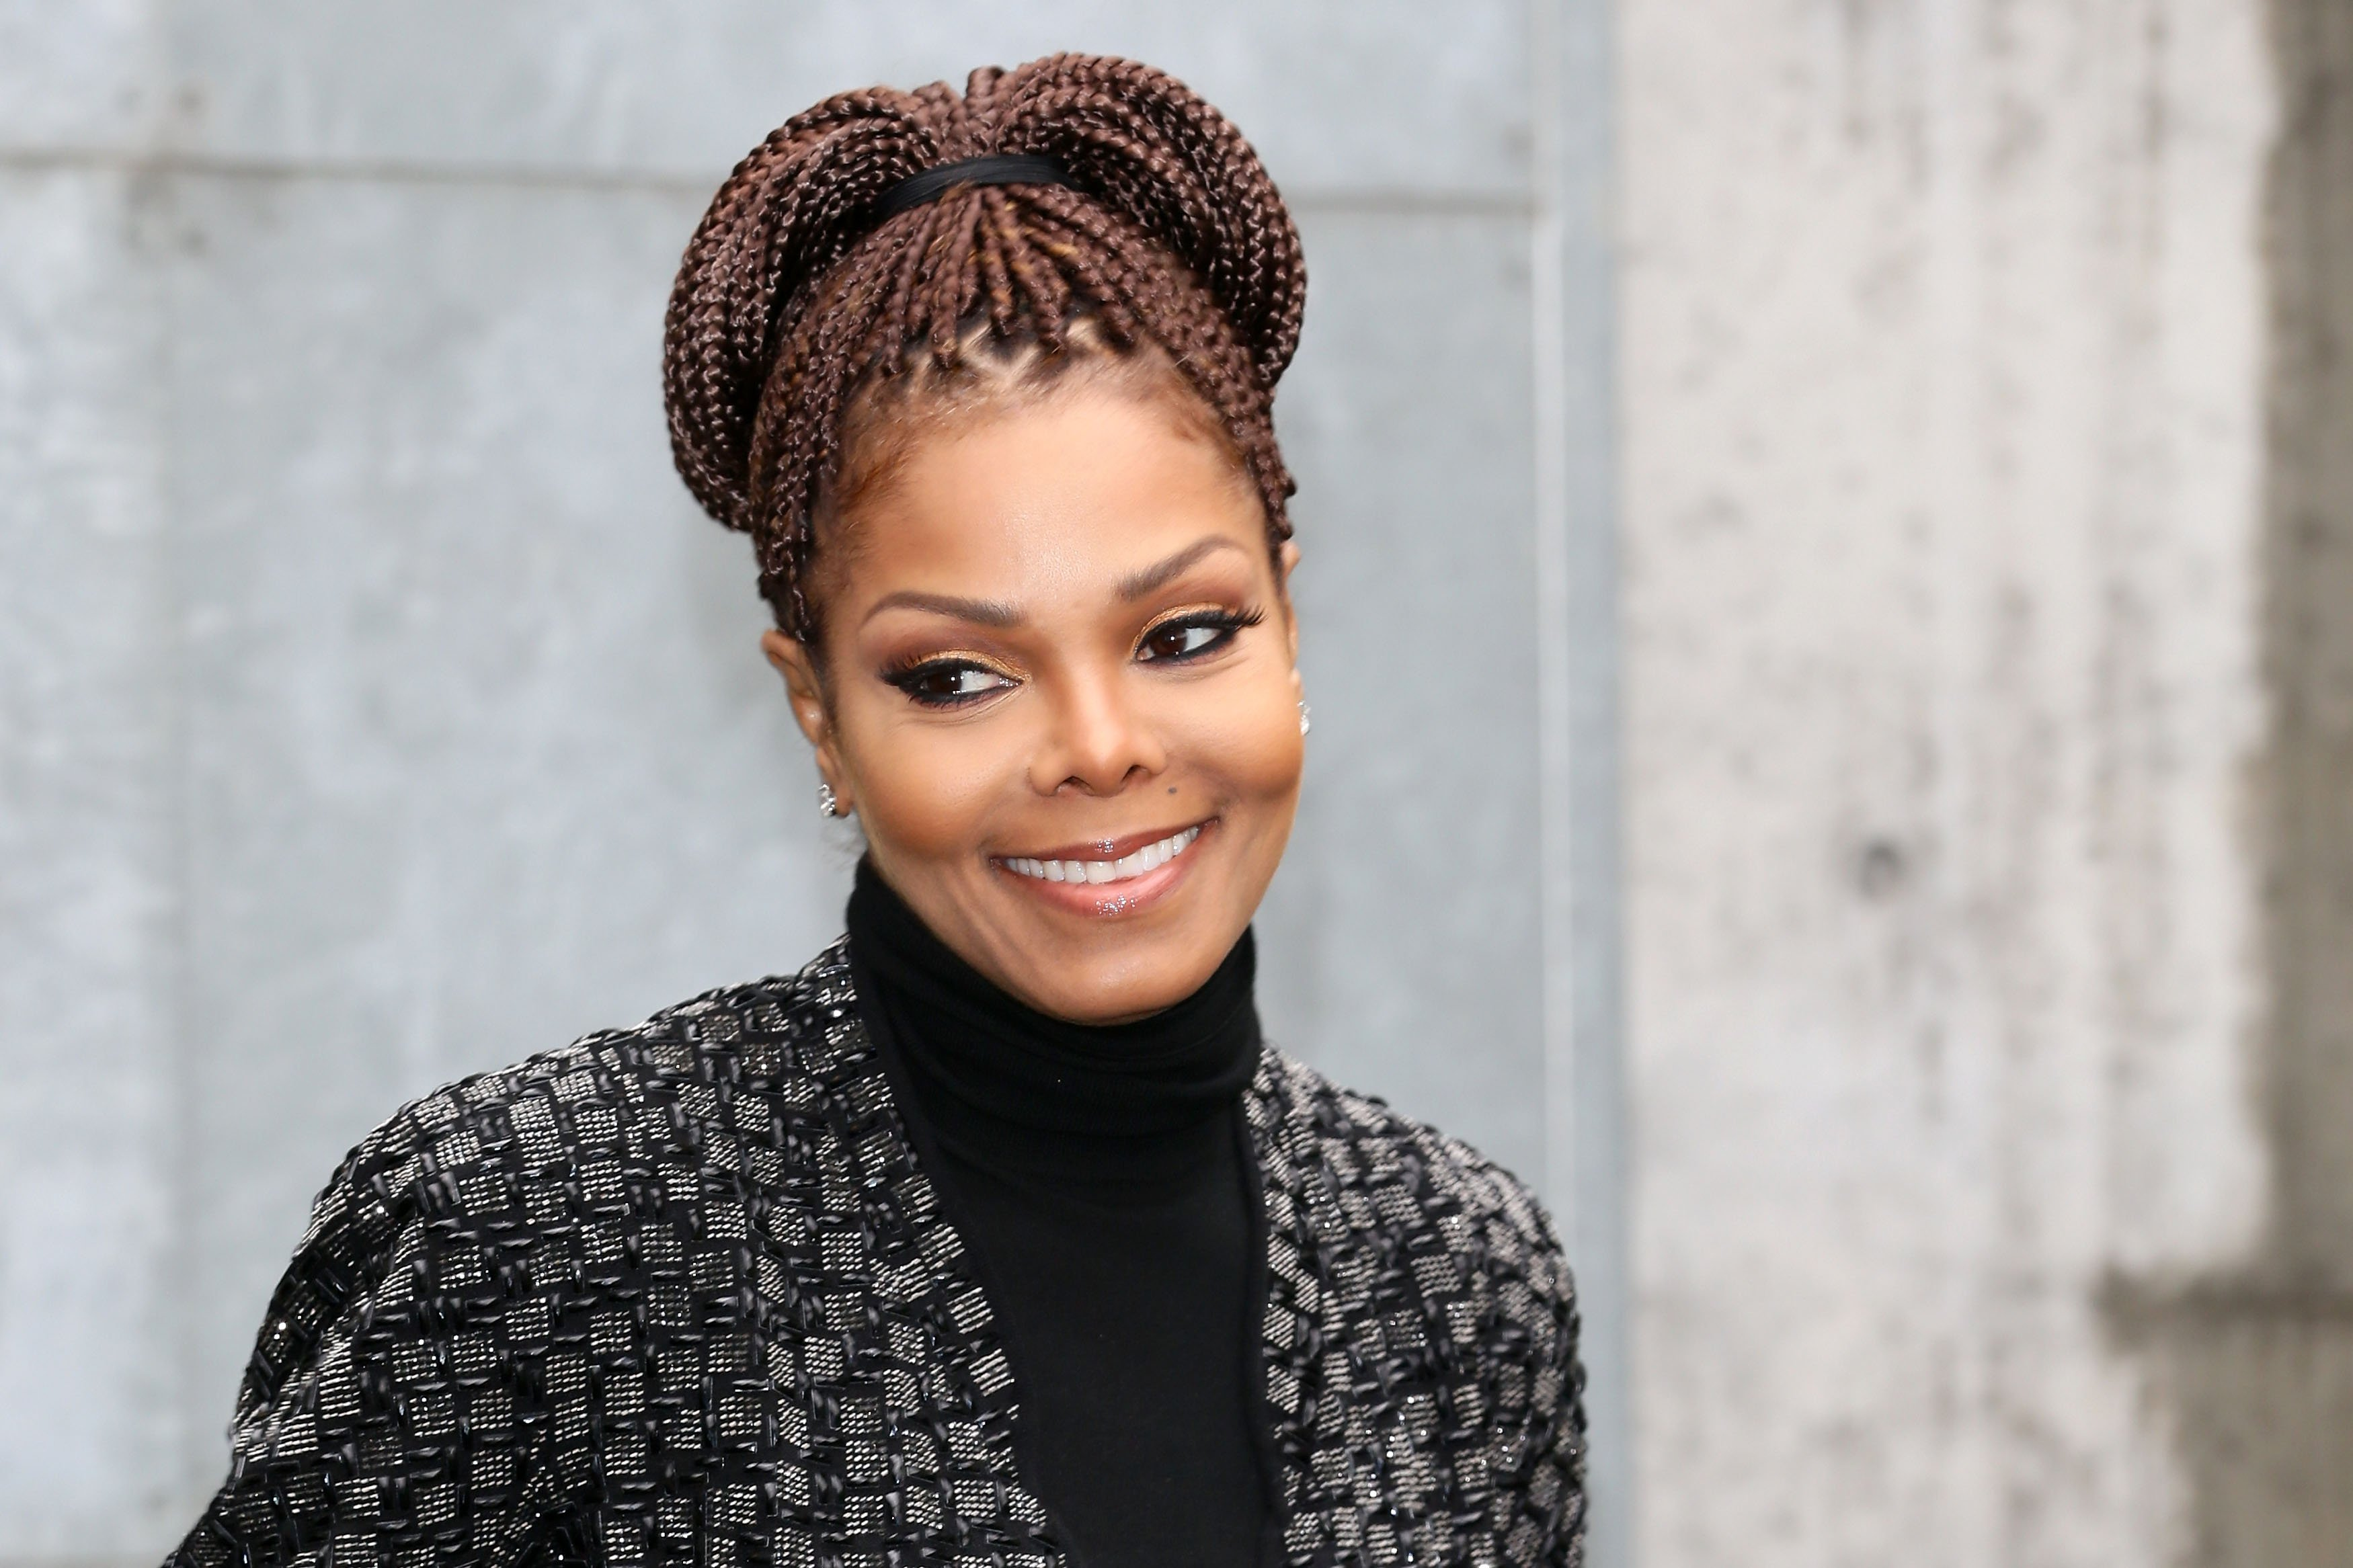 Janet Jackson at the Giorgio Armani fashion show as part of Milan Fashion Week on Feb. 25, 2014 in Italy | Photo: Getty Images